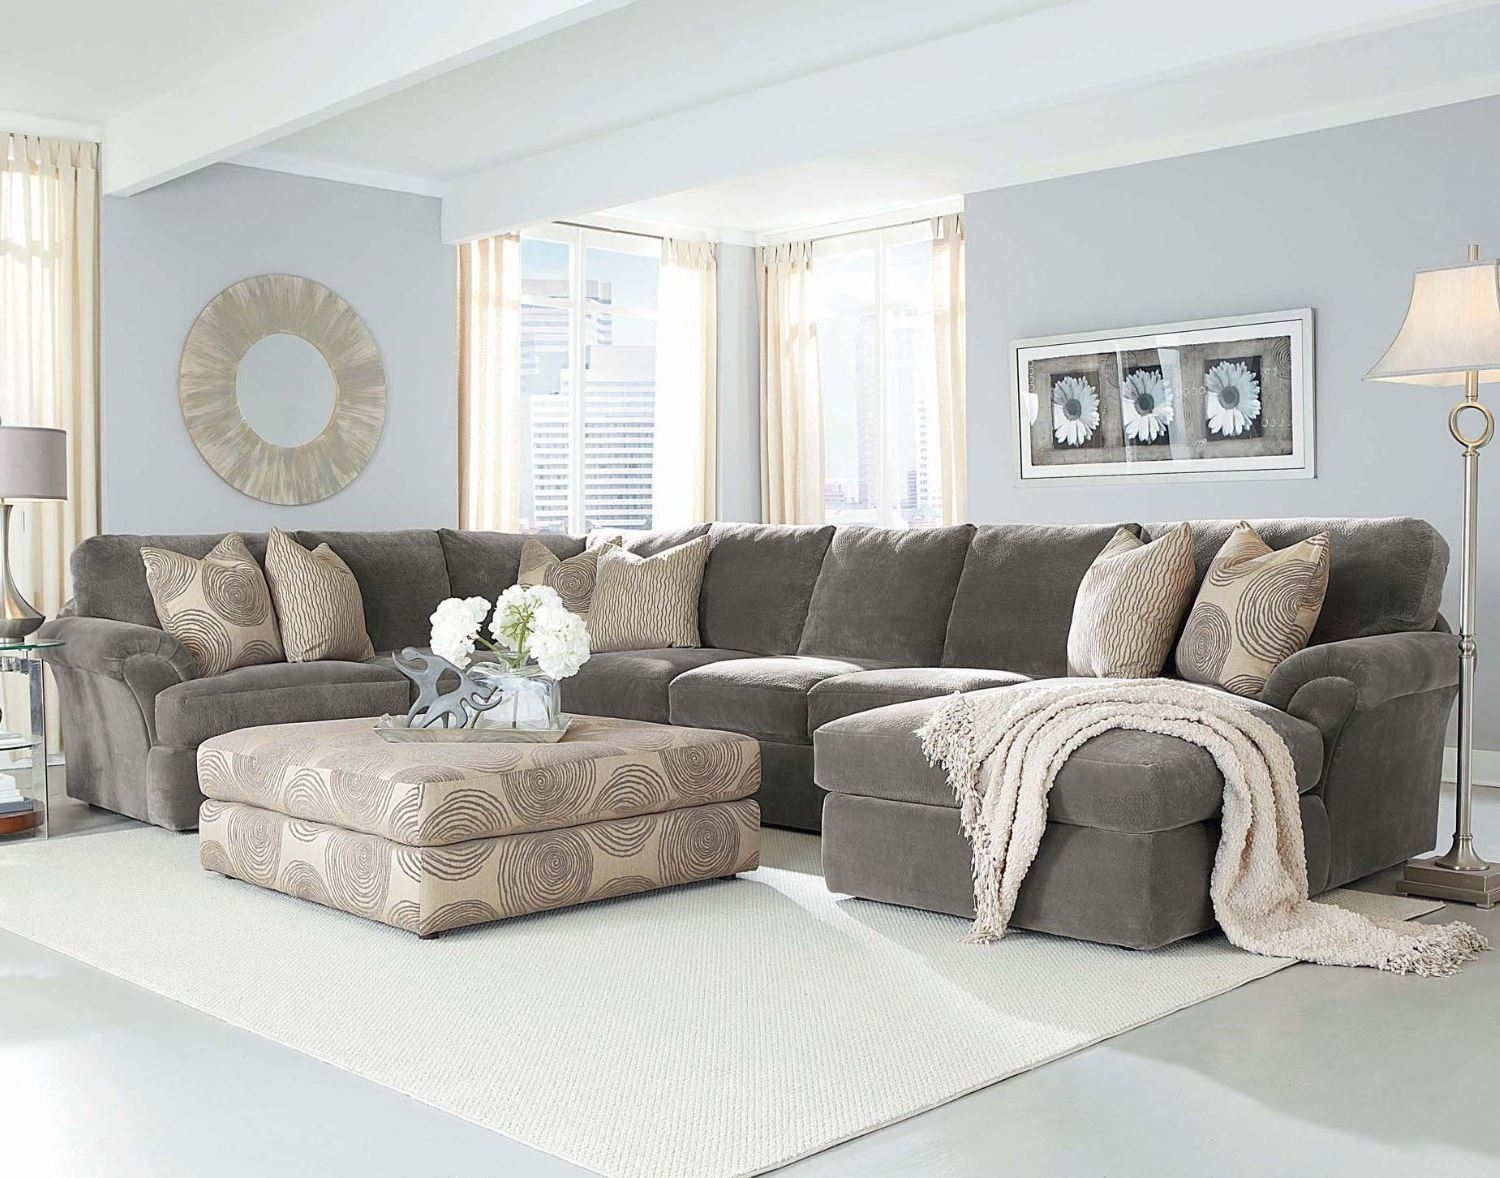 We earn a commission for products purchased through some links in this article. 12 Collection of Bradley Sectional Sofa